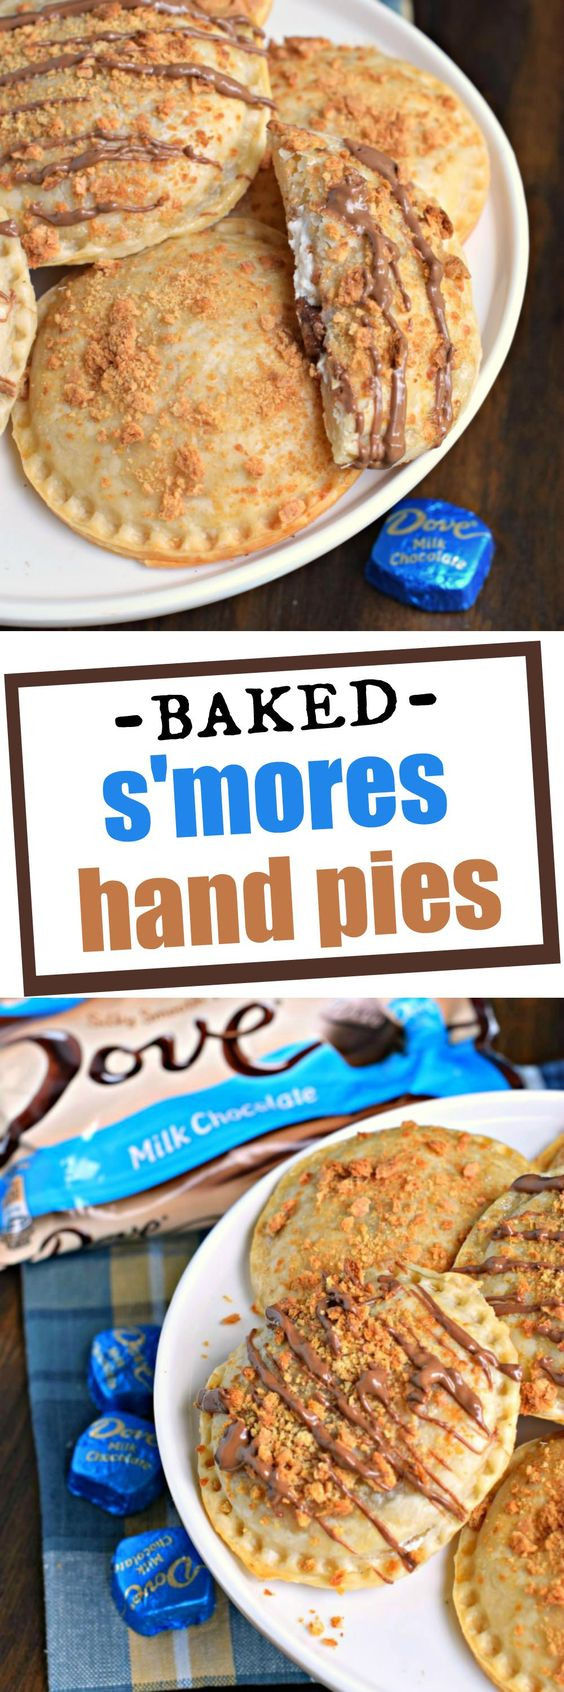 No campfire needed for these Ooey Gooey BAKED S'mores Hand Pies! They ...